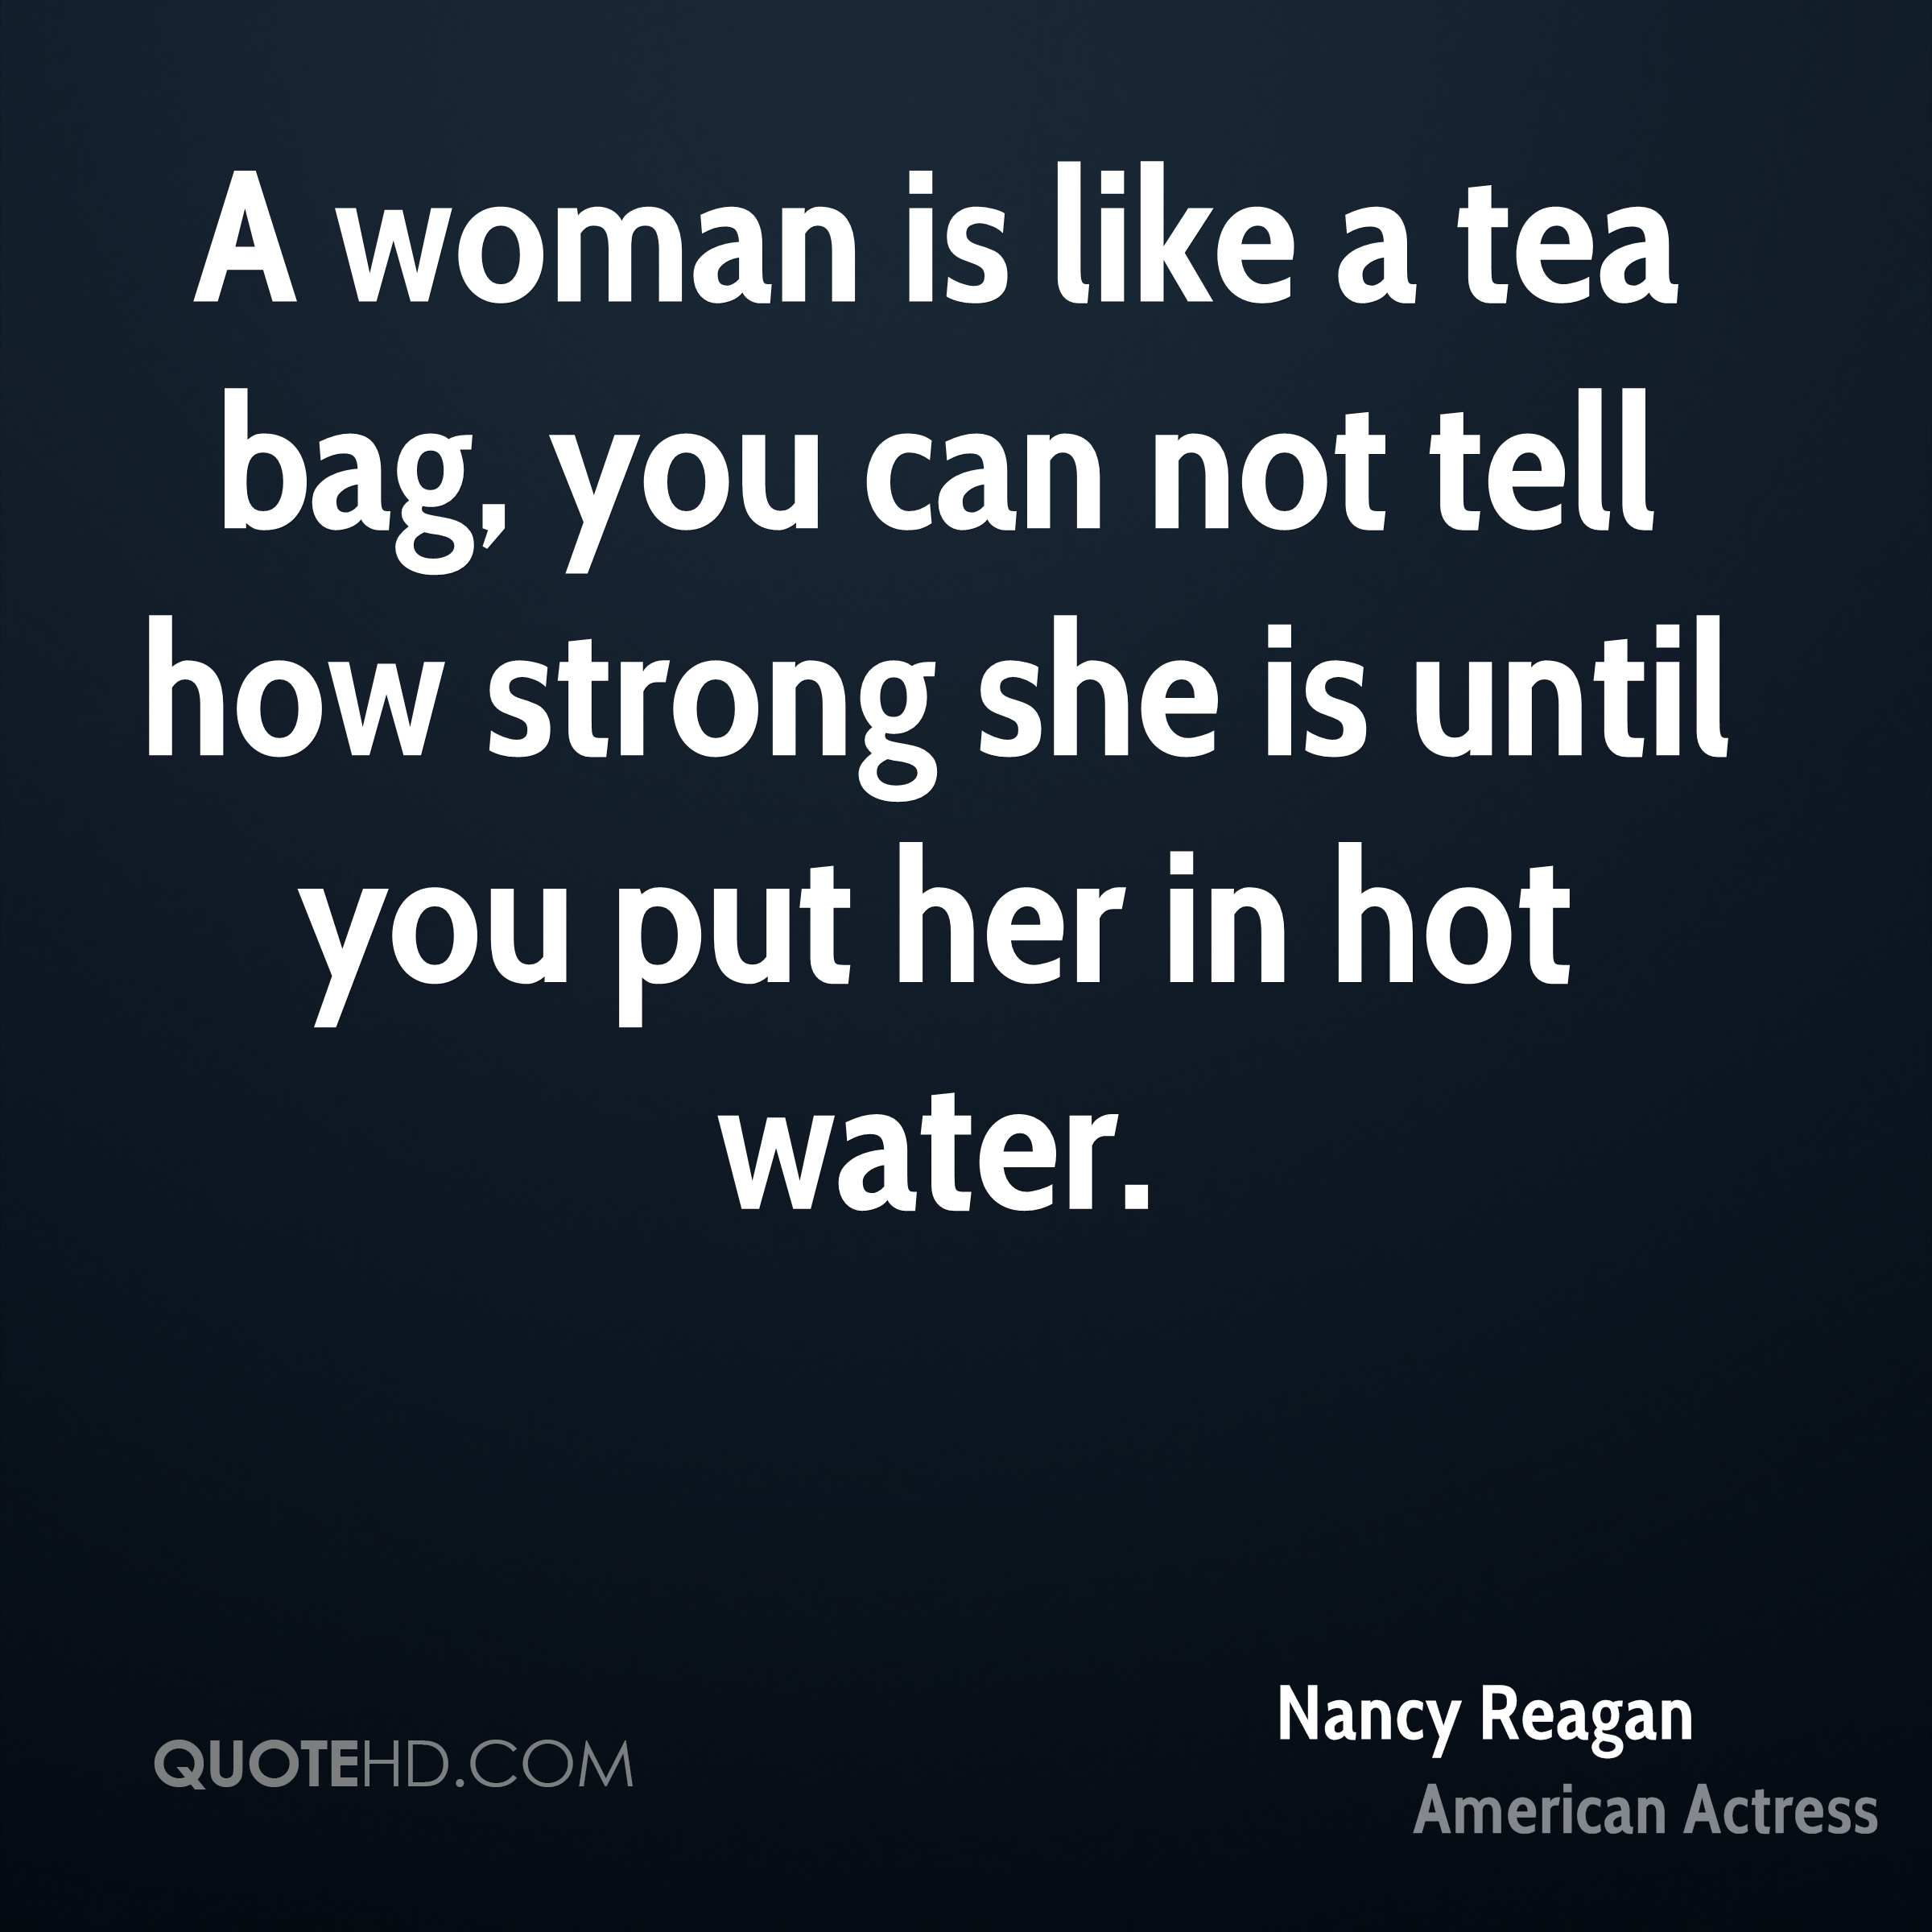 A woman is like a tea bag, you can not tell how strong she is until you put her in hot water.